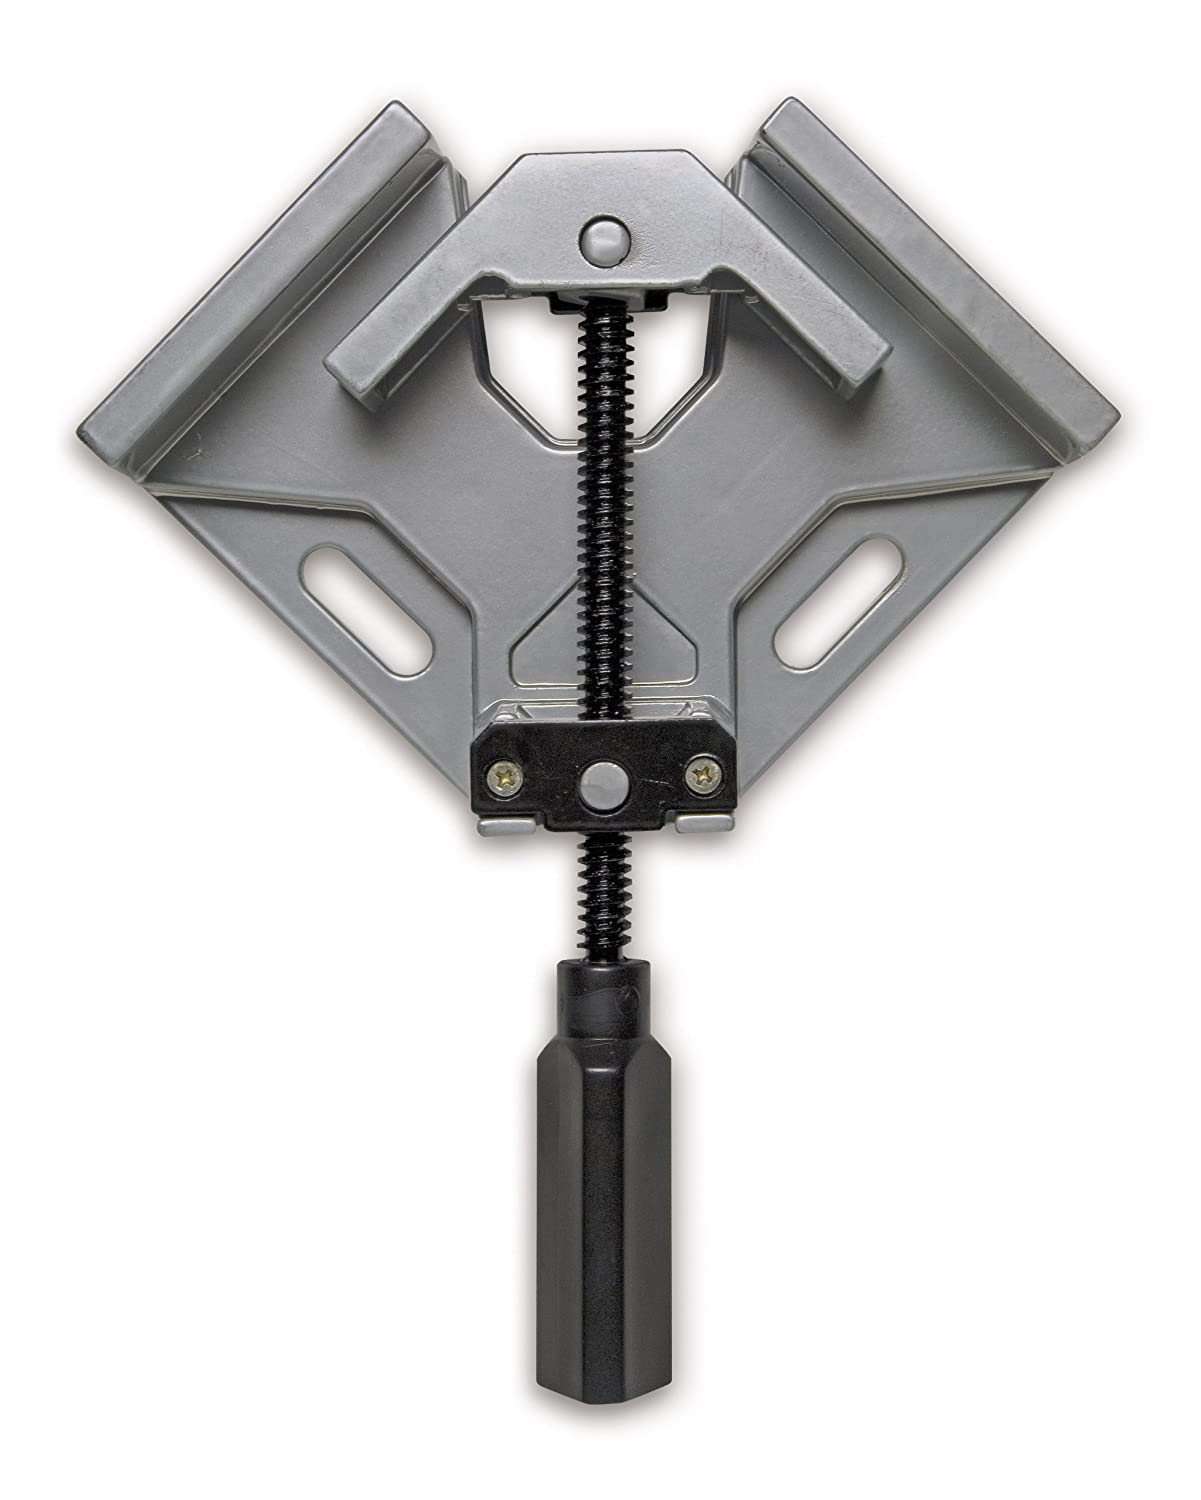 Hobart 770565 Two Axis Welding Clamp